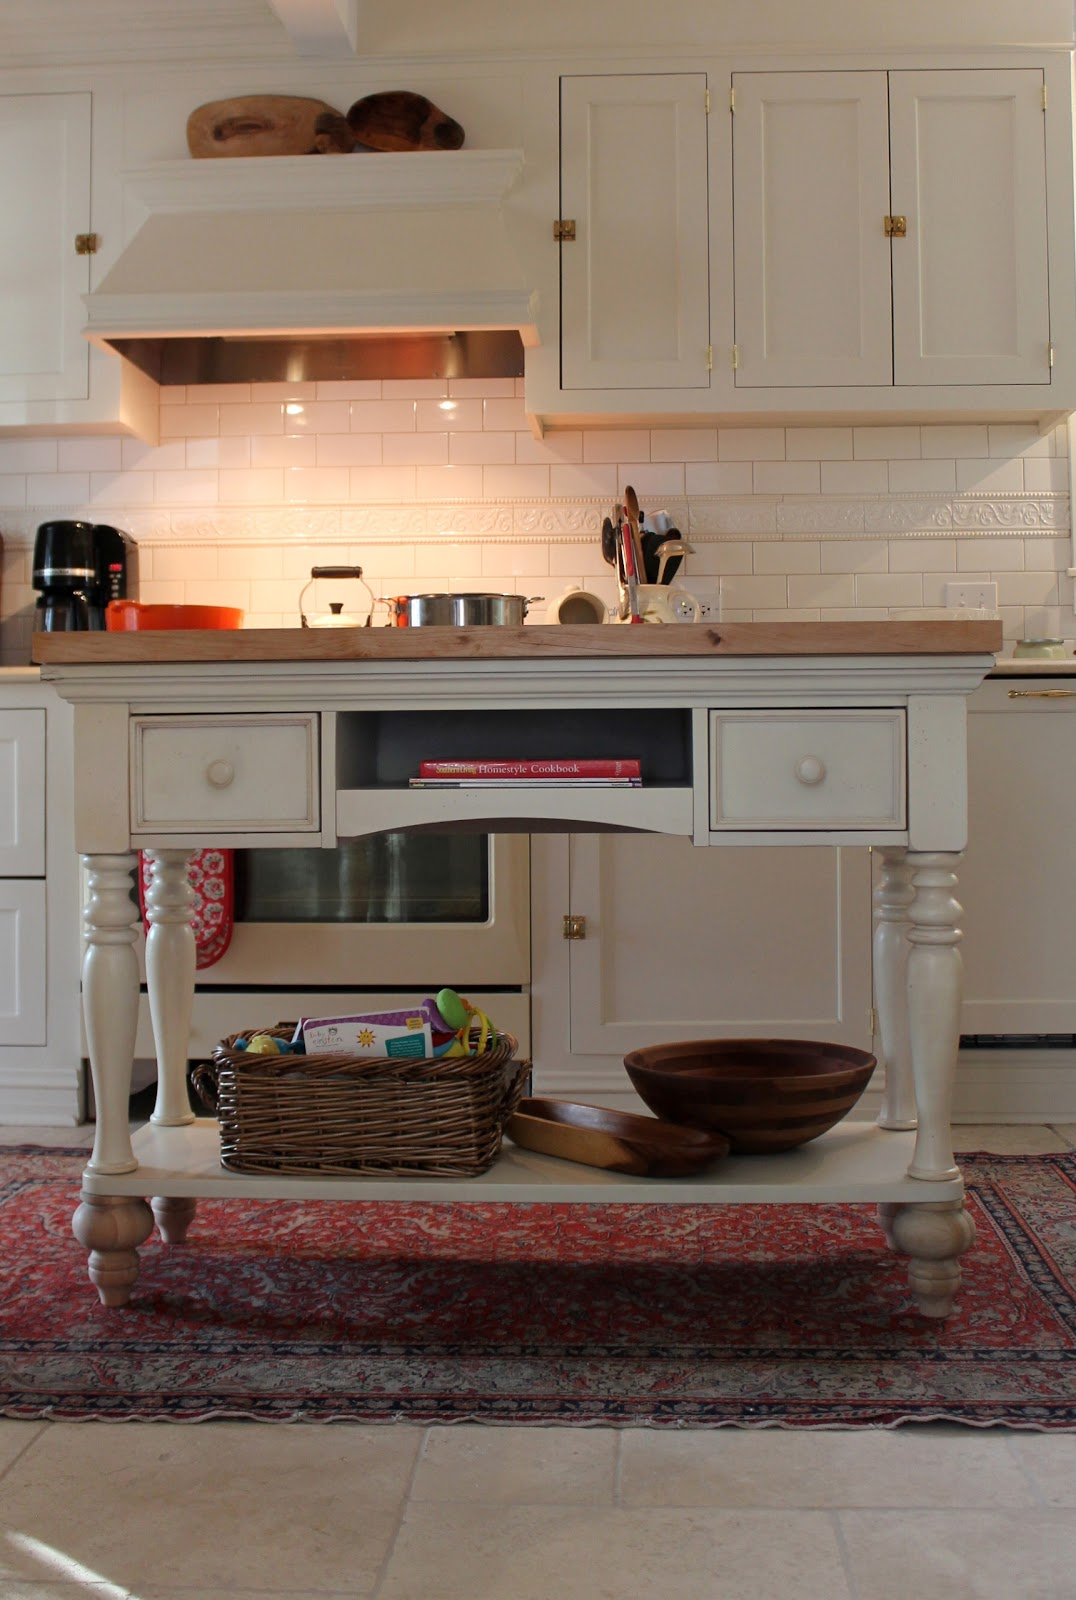 Designing Domesticity: DIY Kitchen Island